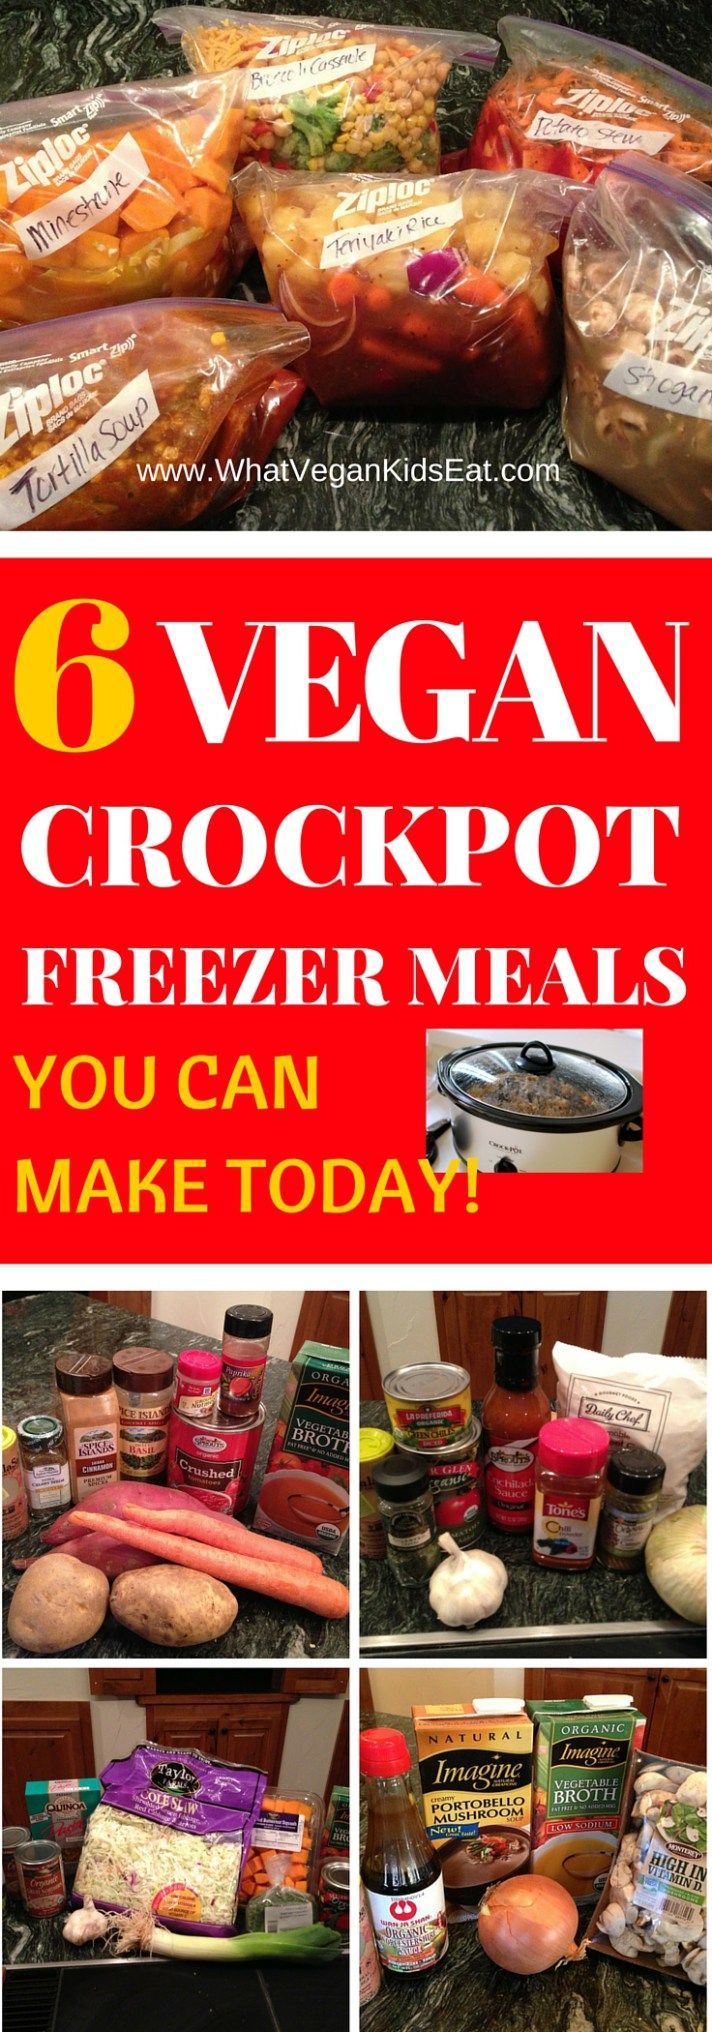 VEGAN Crockpot FREEZER Meals